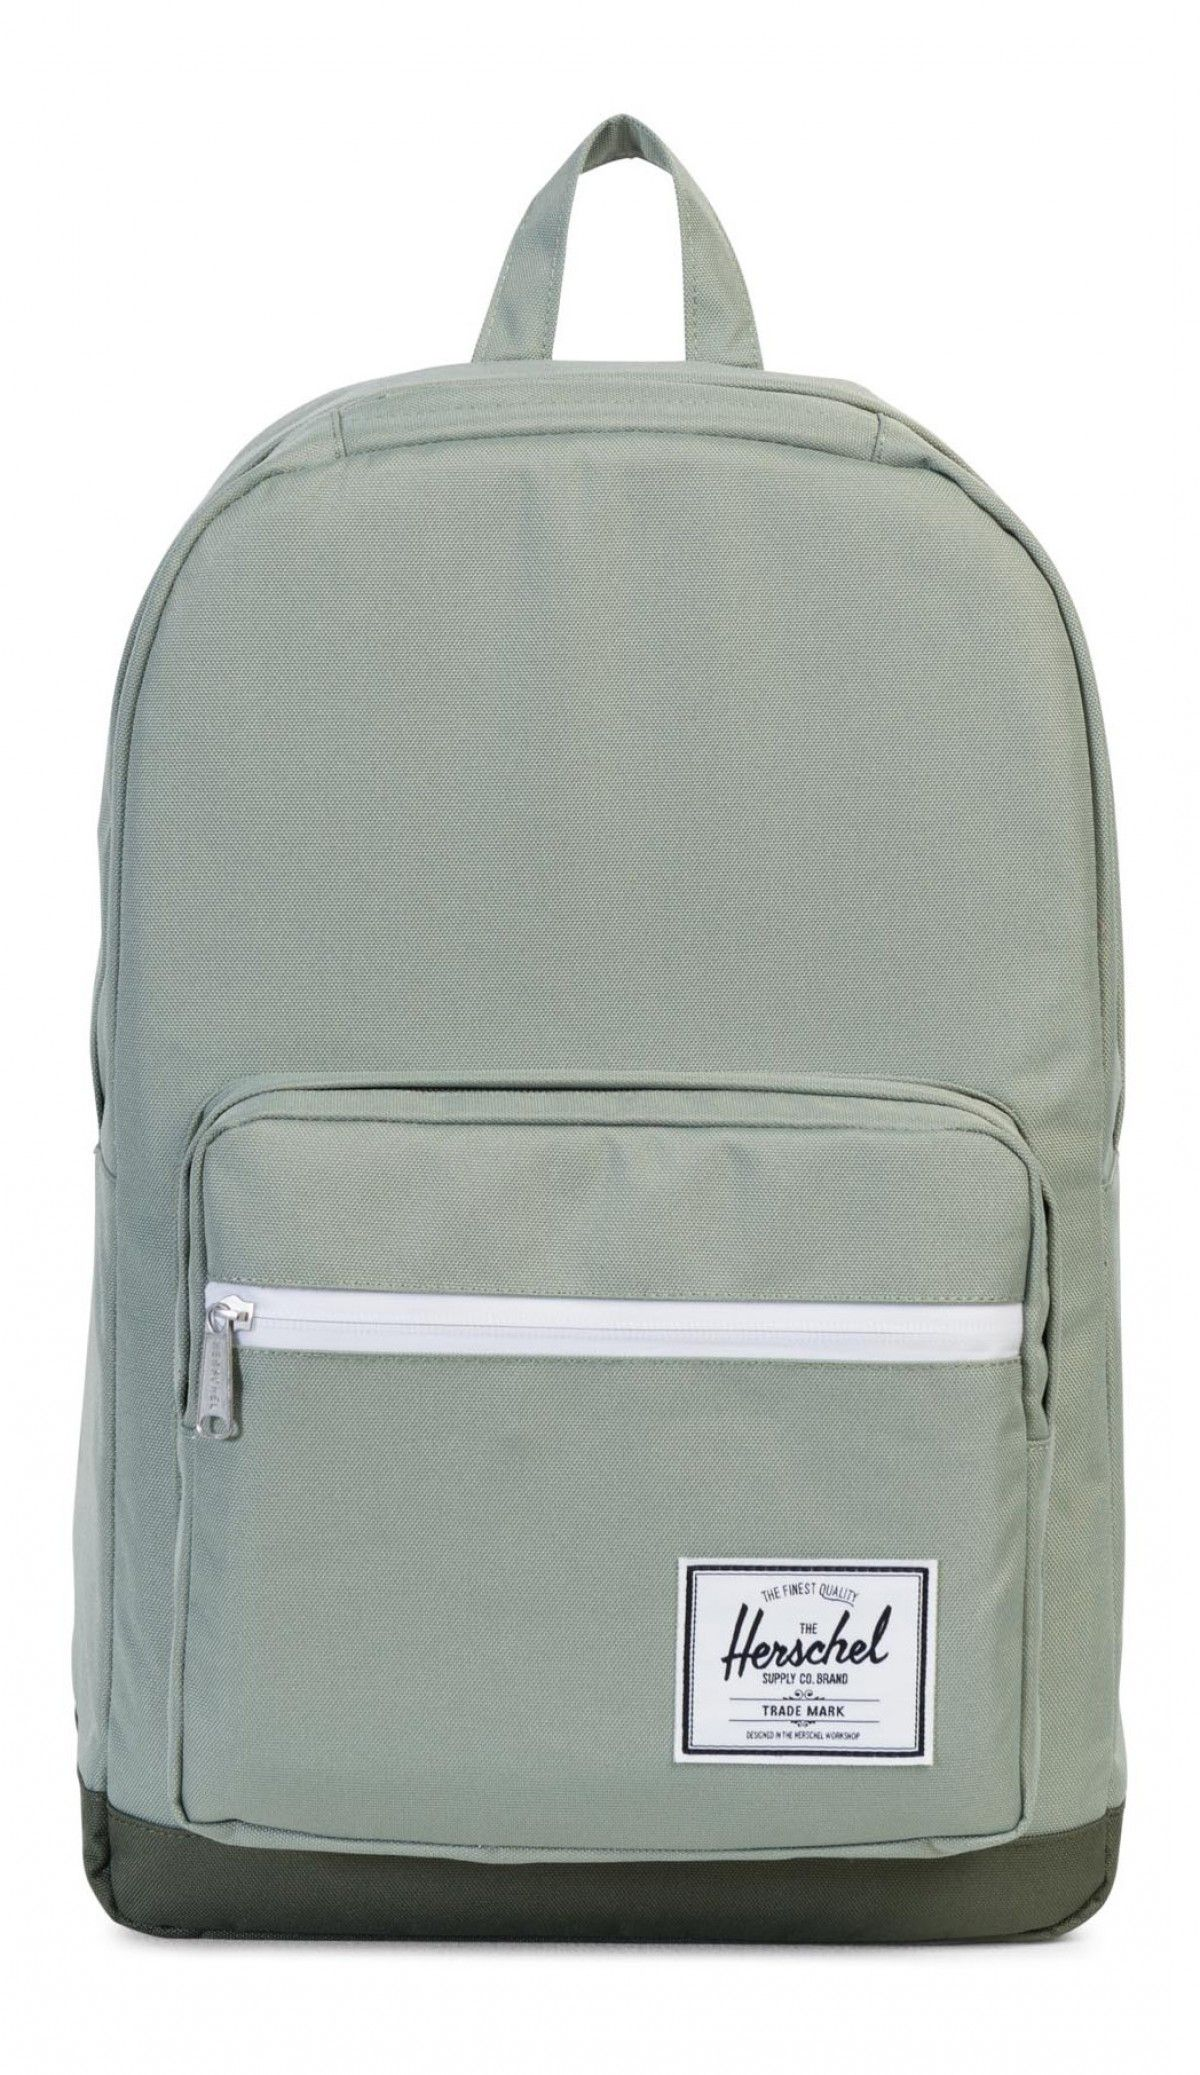 4facd077867 Herschel Pop Quiz 600D Poly Shadow/Beetle | Herschel | Herschel pop ...